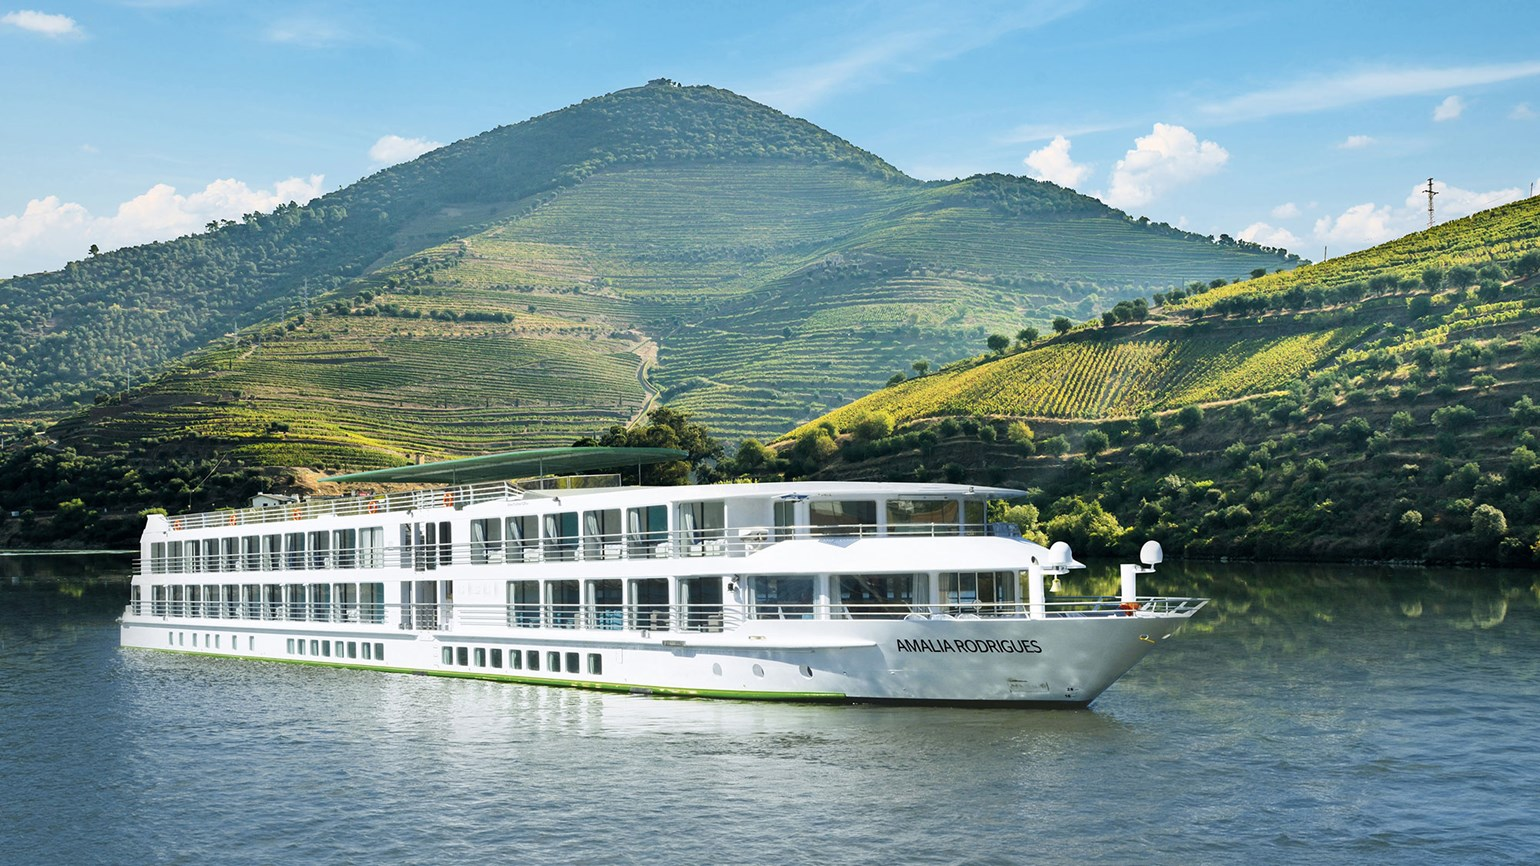 CroisiEurope launches the Amalia Rodrigues